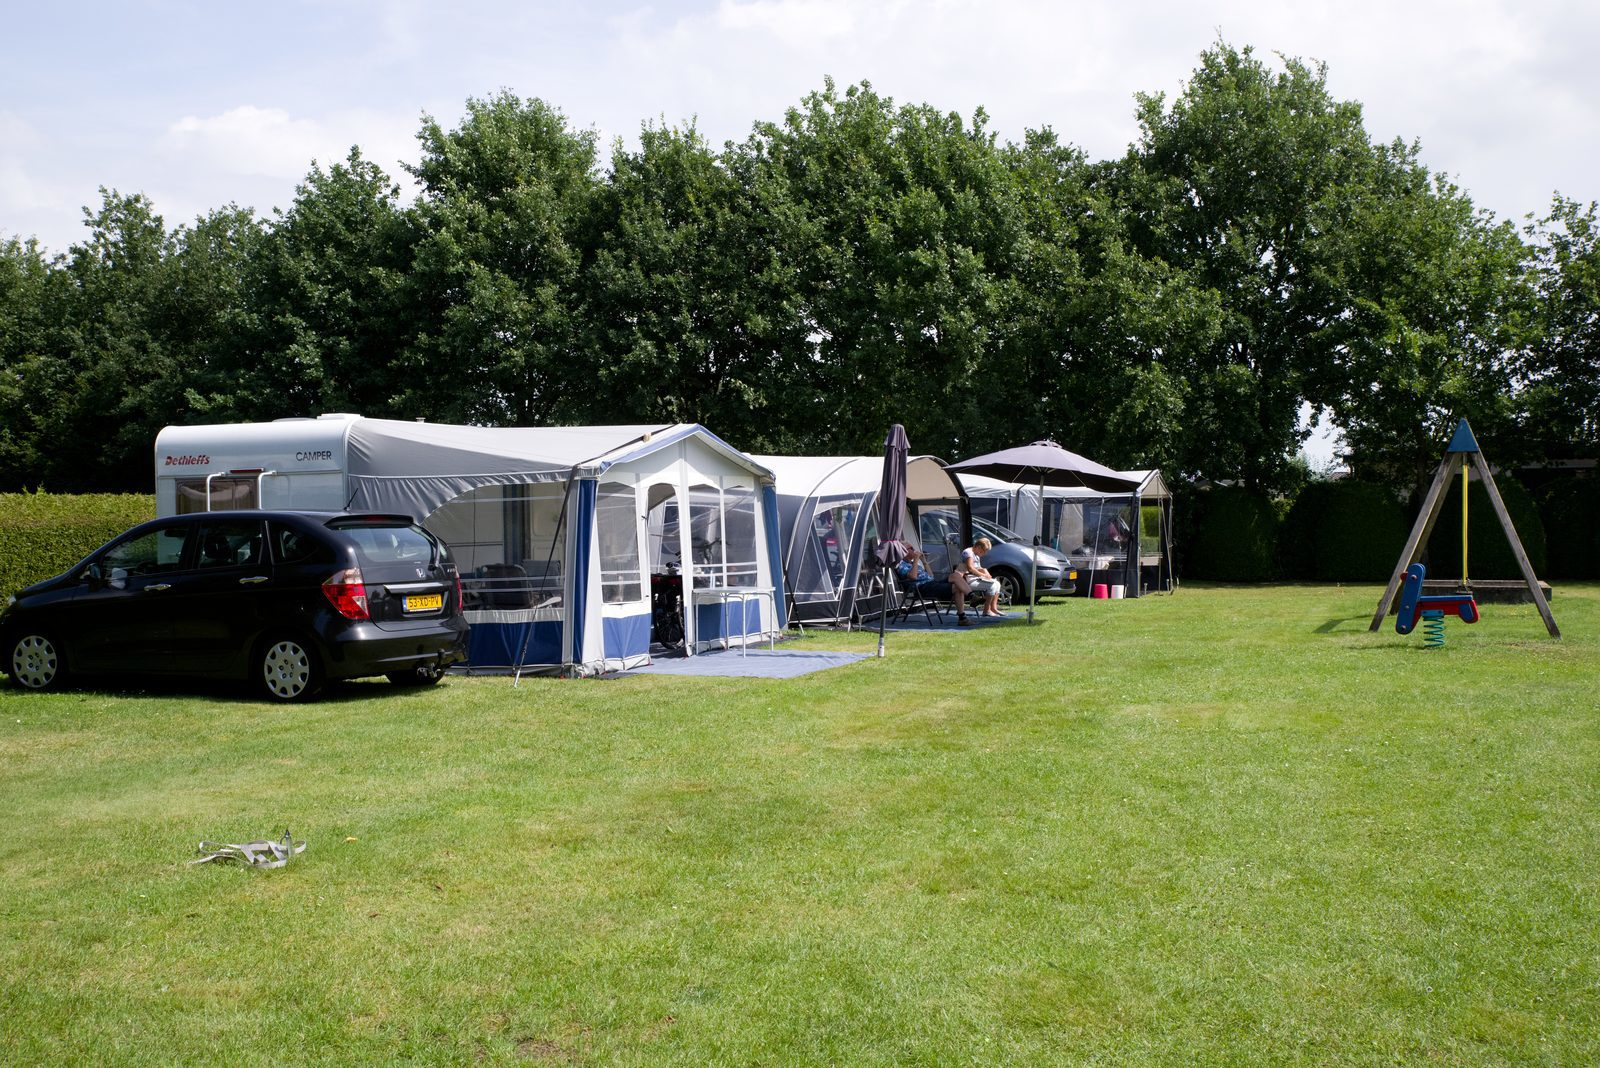 Camping in the Assen area